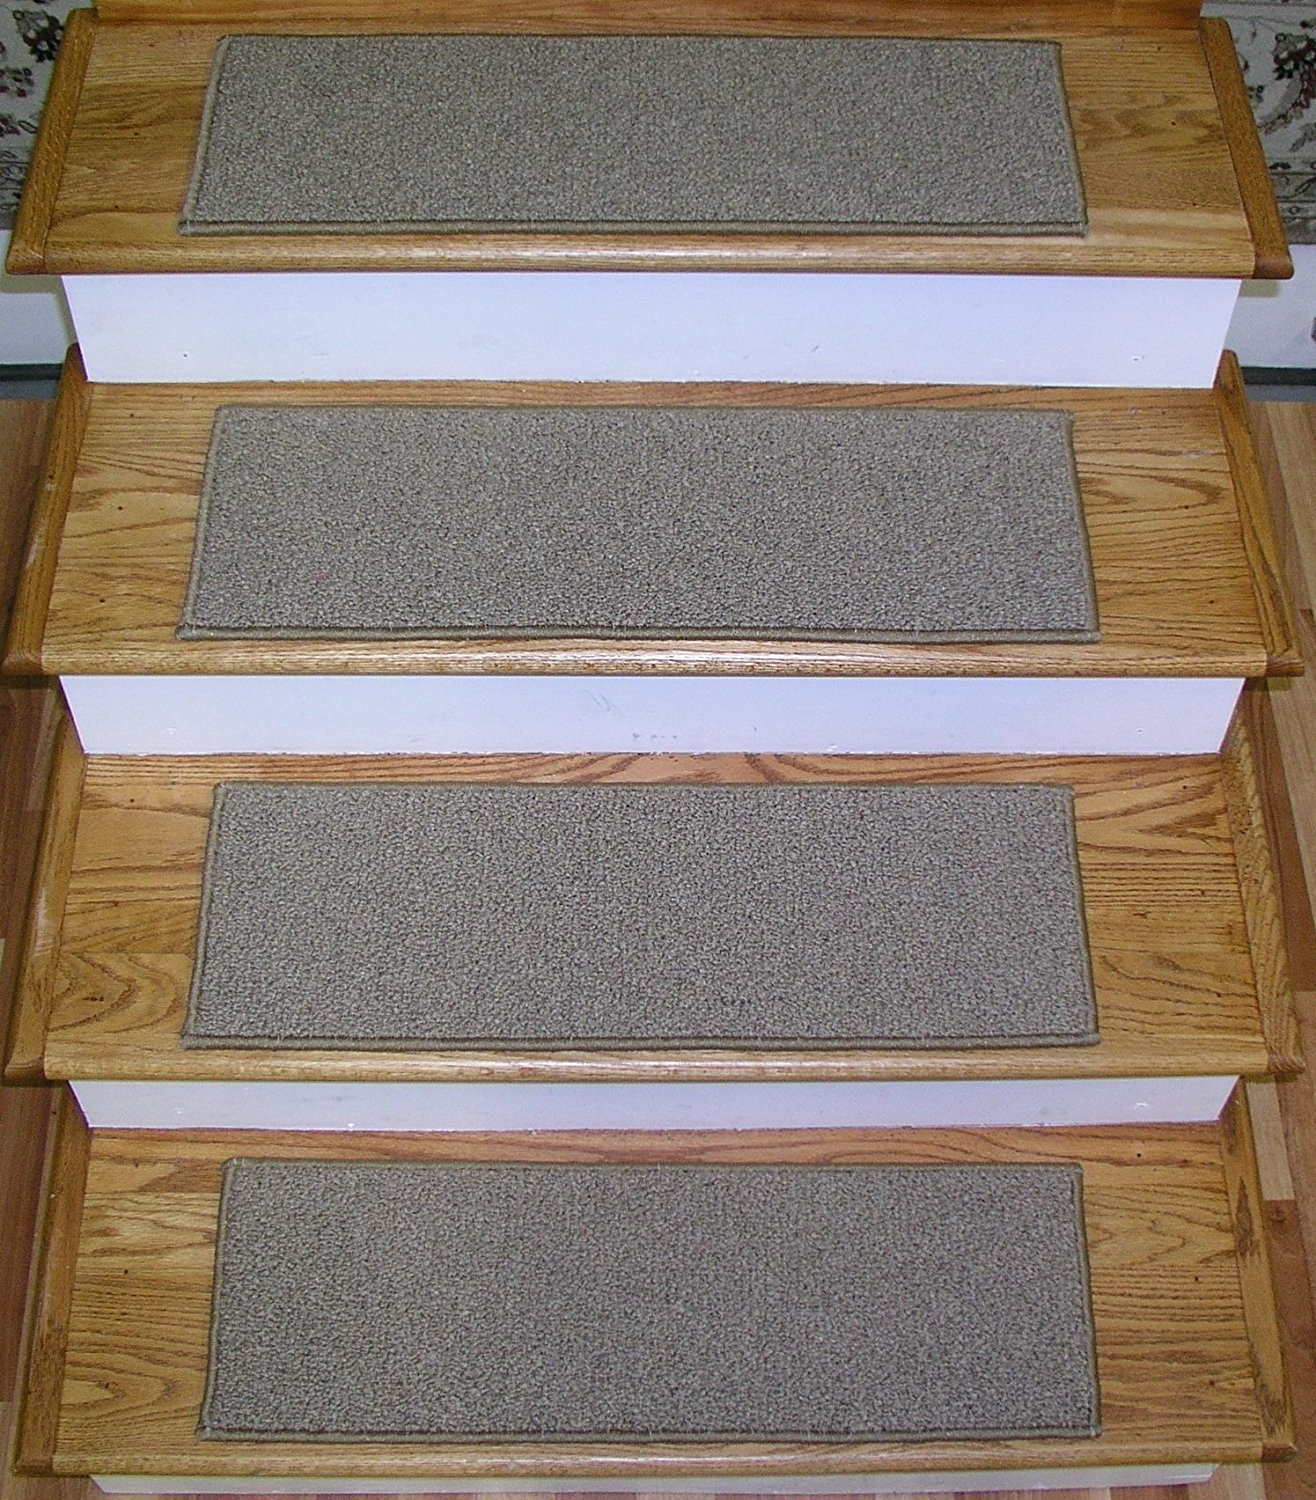 Get Quotations 174375 Rug Depot Premium Carpet Stair Treads 27 X 9